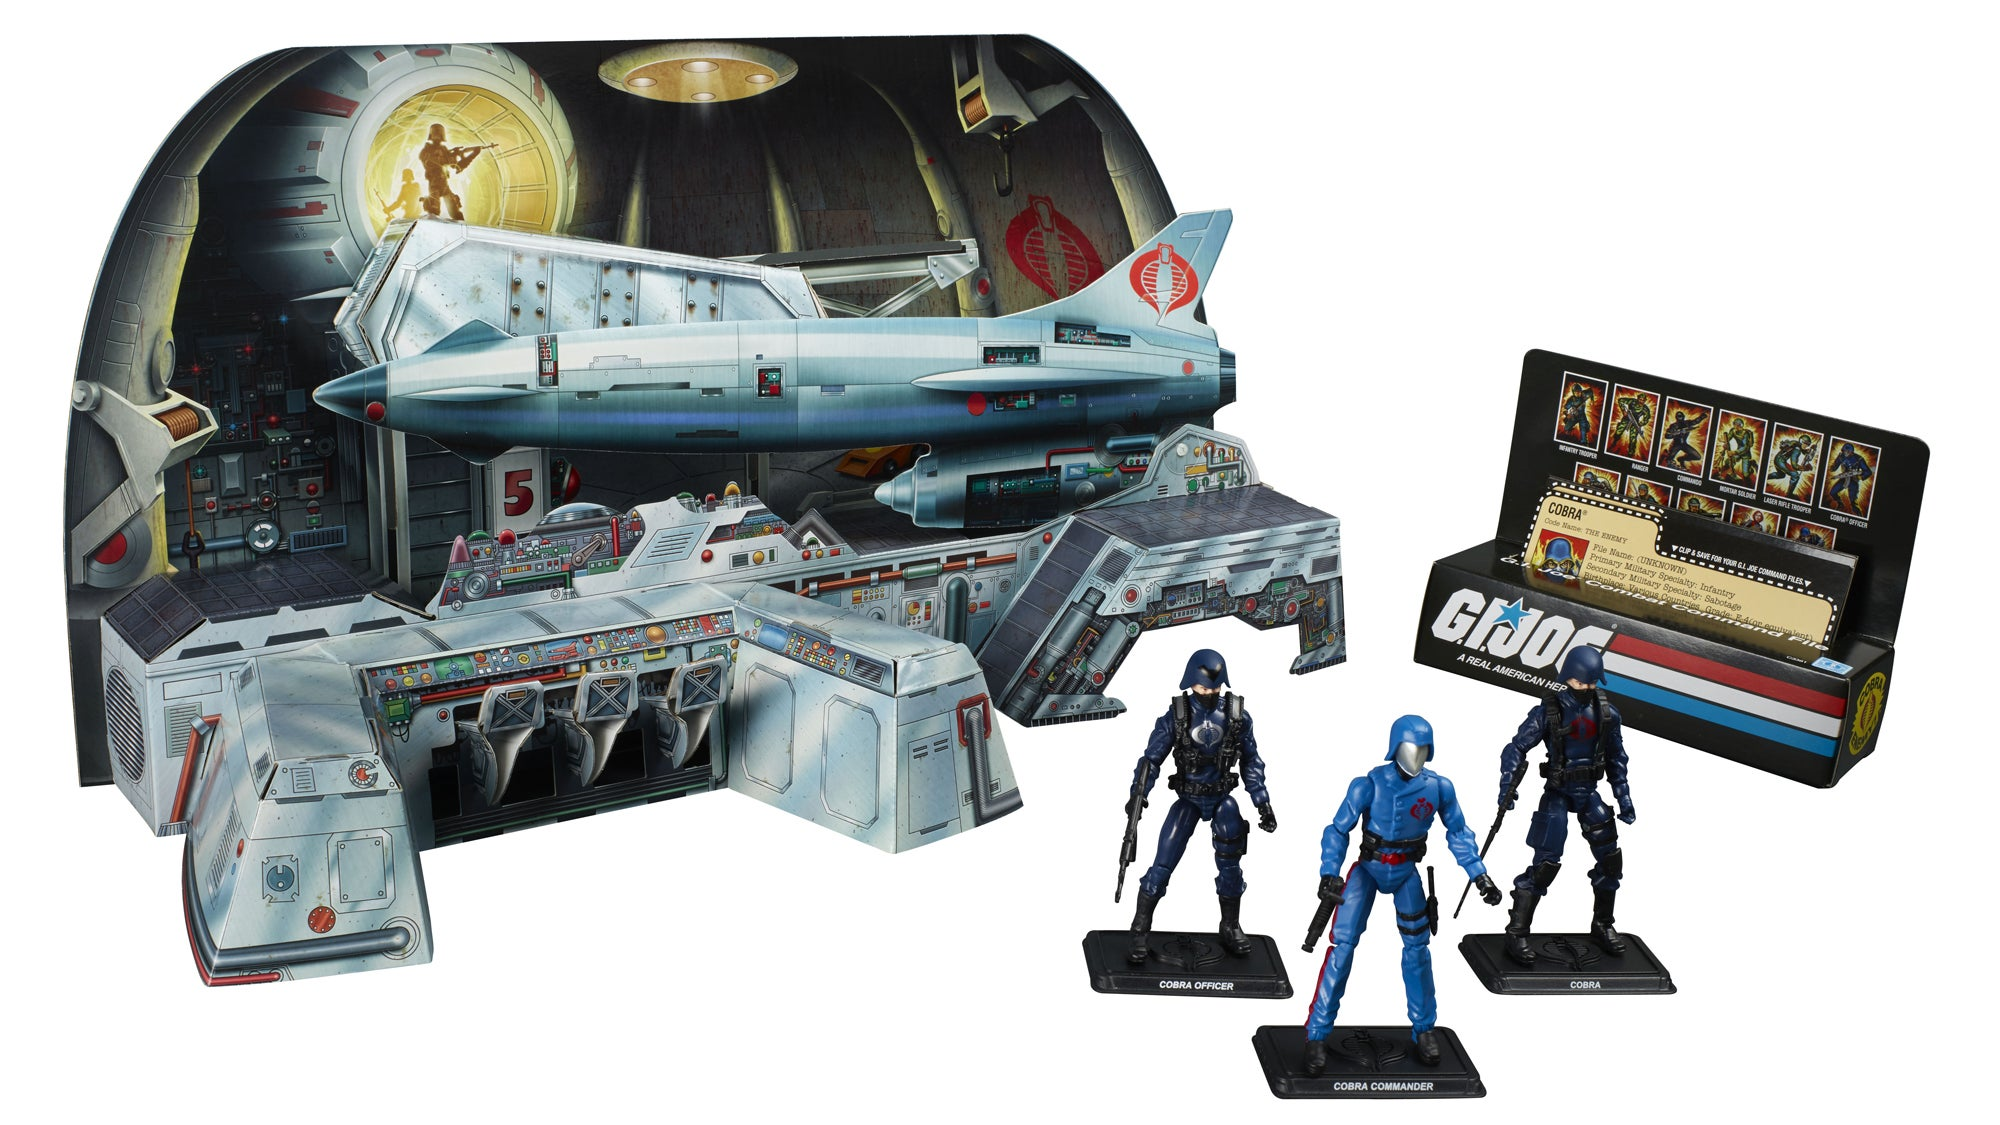 One Of The Oldest And Rarest GI Joe Playsets Is Returning As A San Diego Comic-Con Exclusive